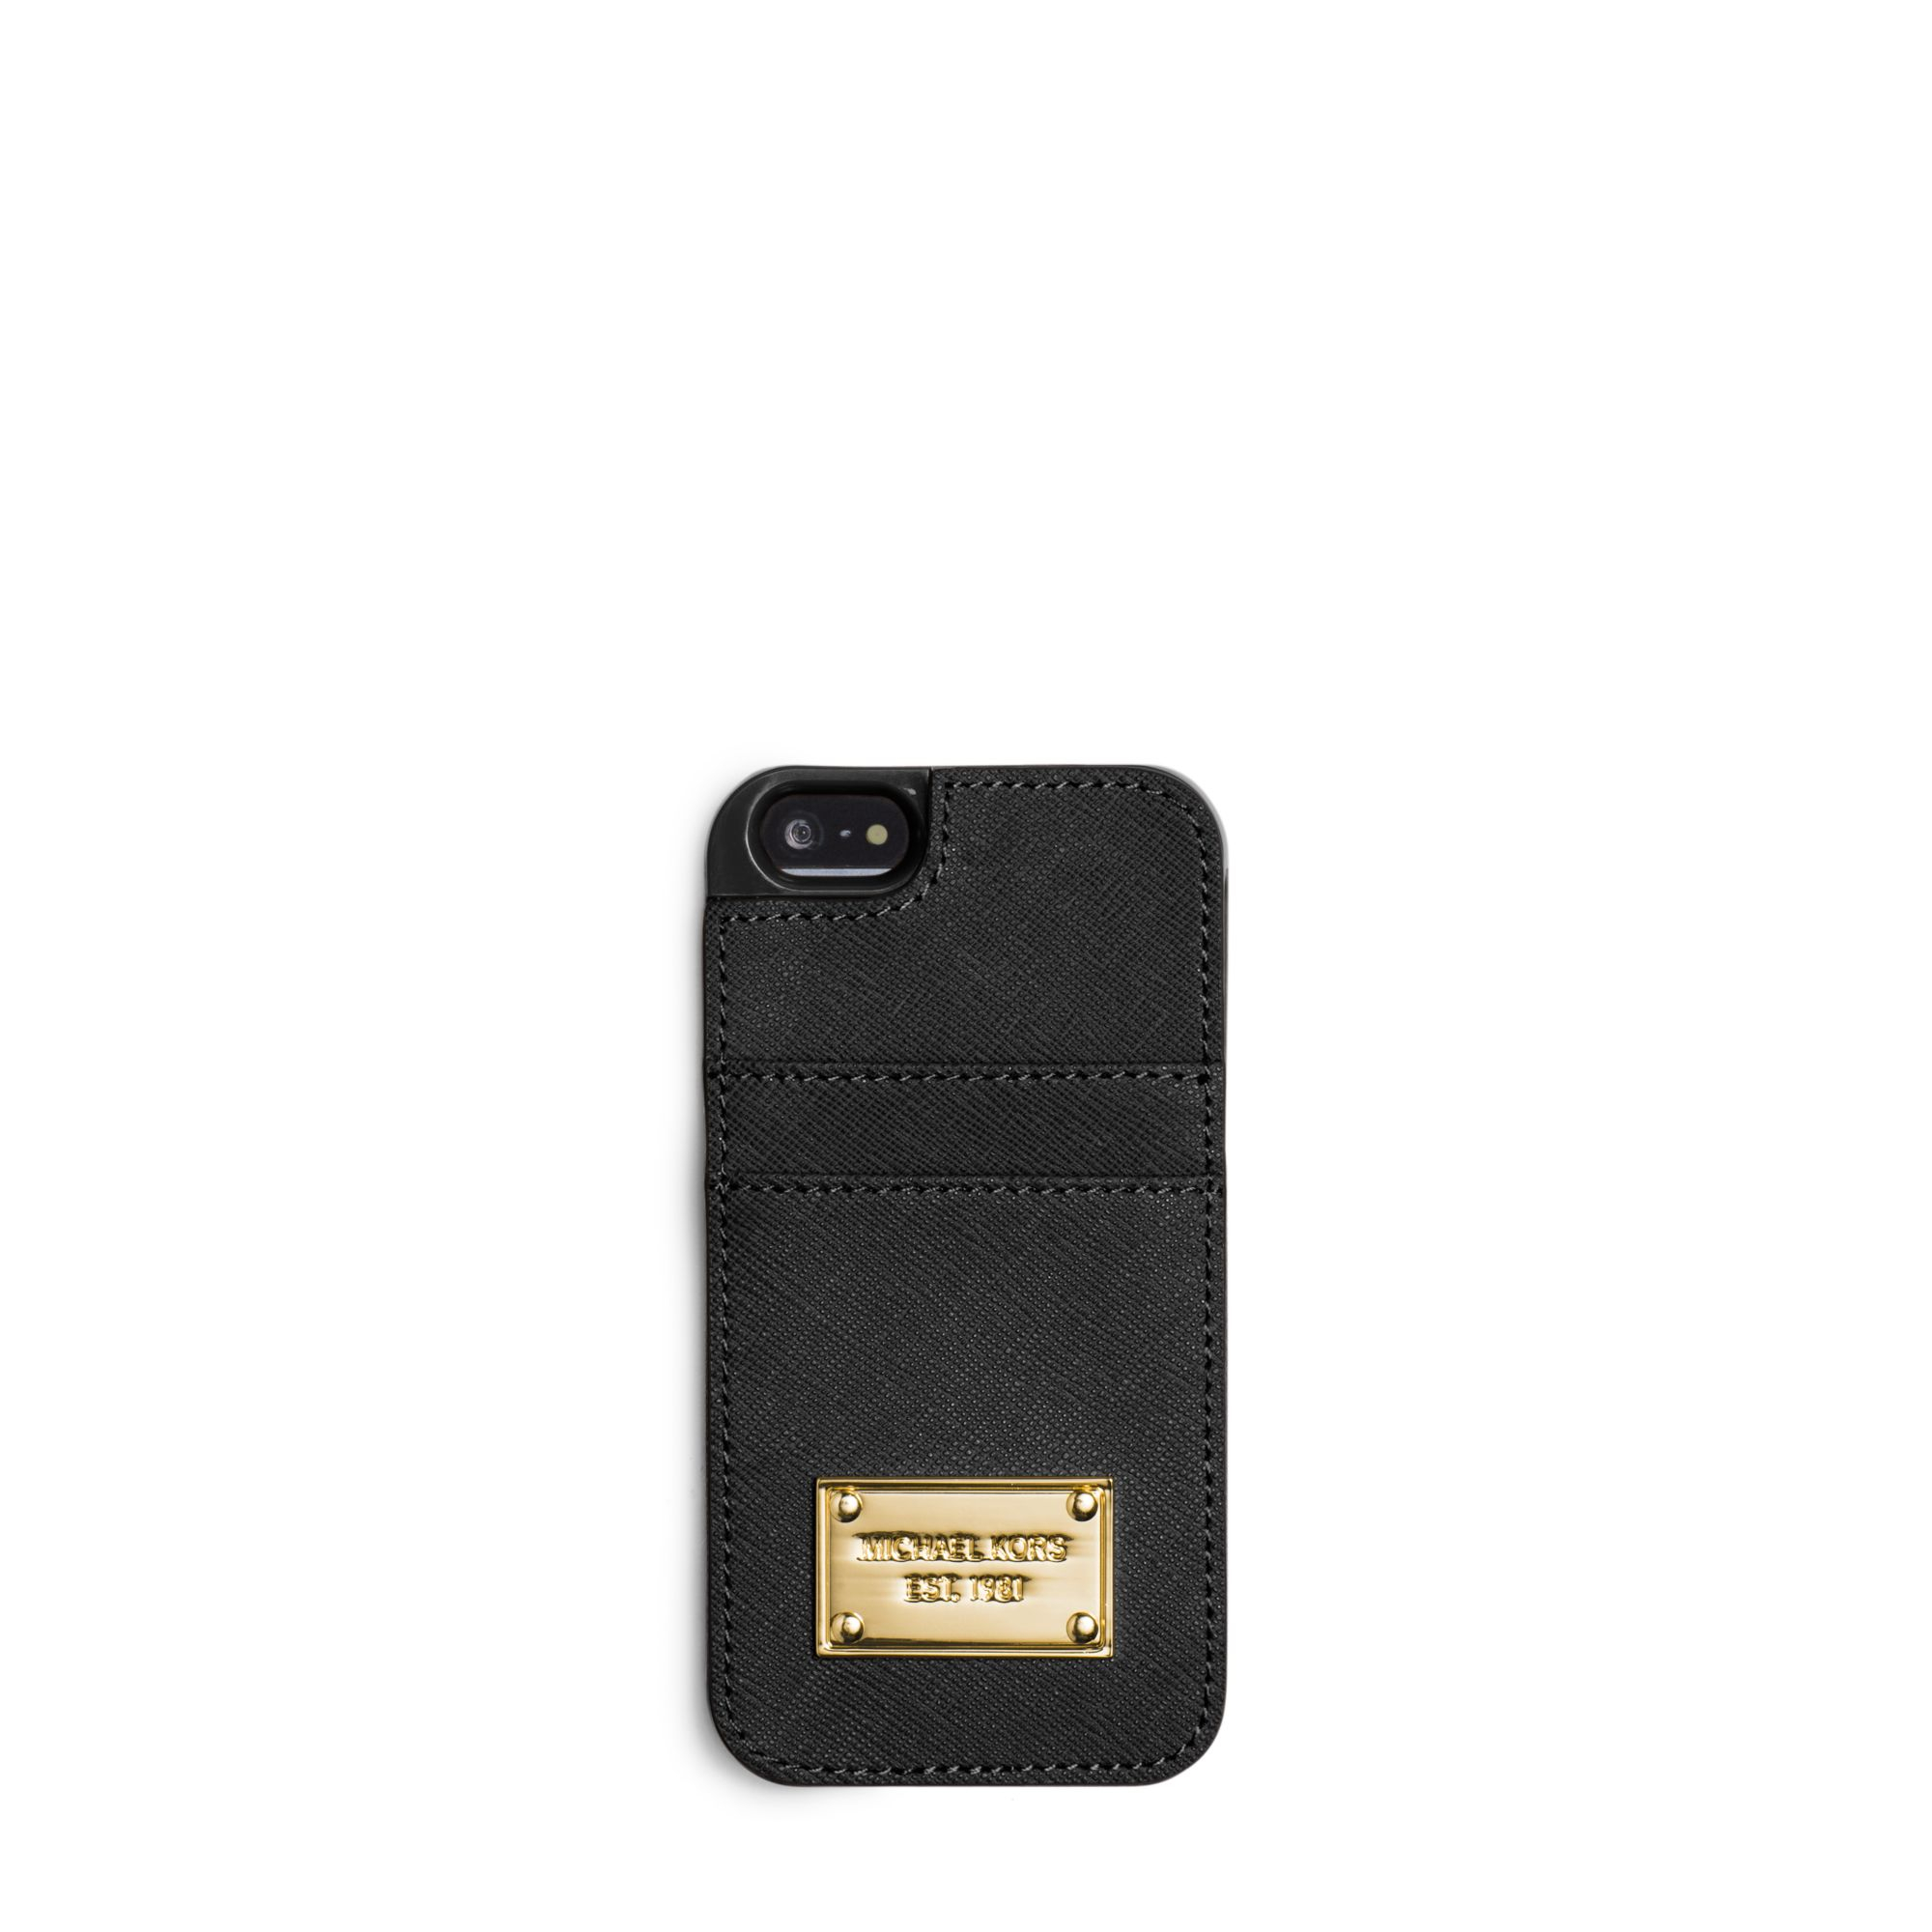 Michael Kors Wallet Case Iphone